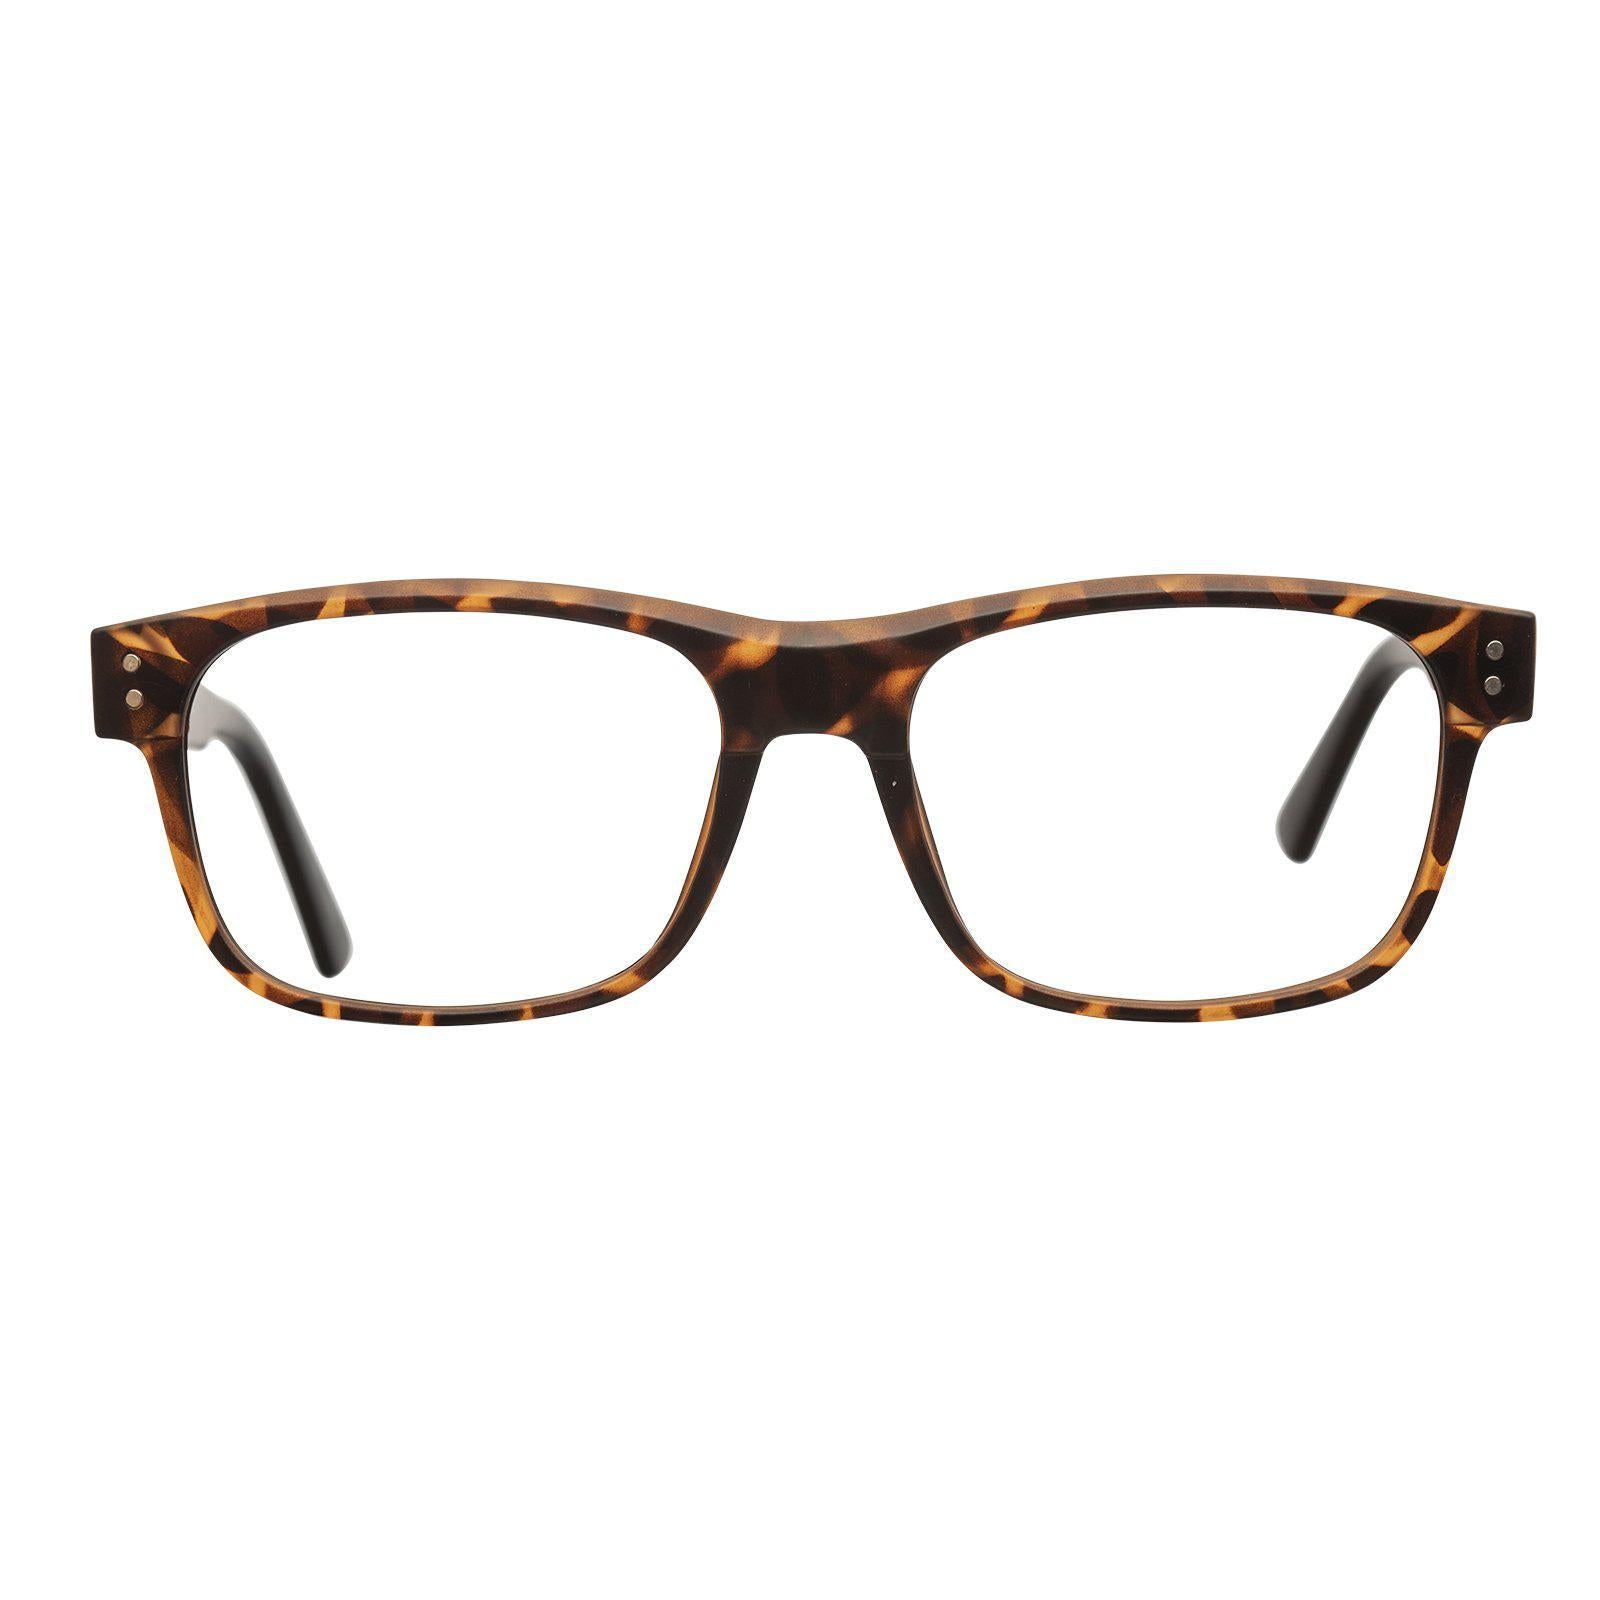 Camberwell by The Square Mile Eyeglasses with Prescription - timetoshade